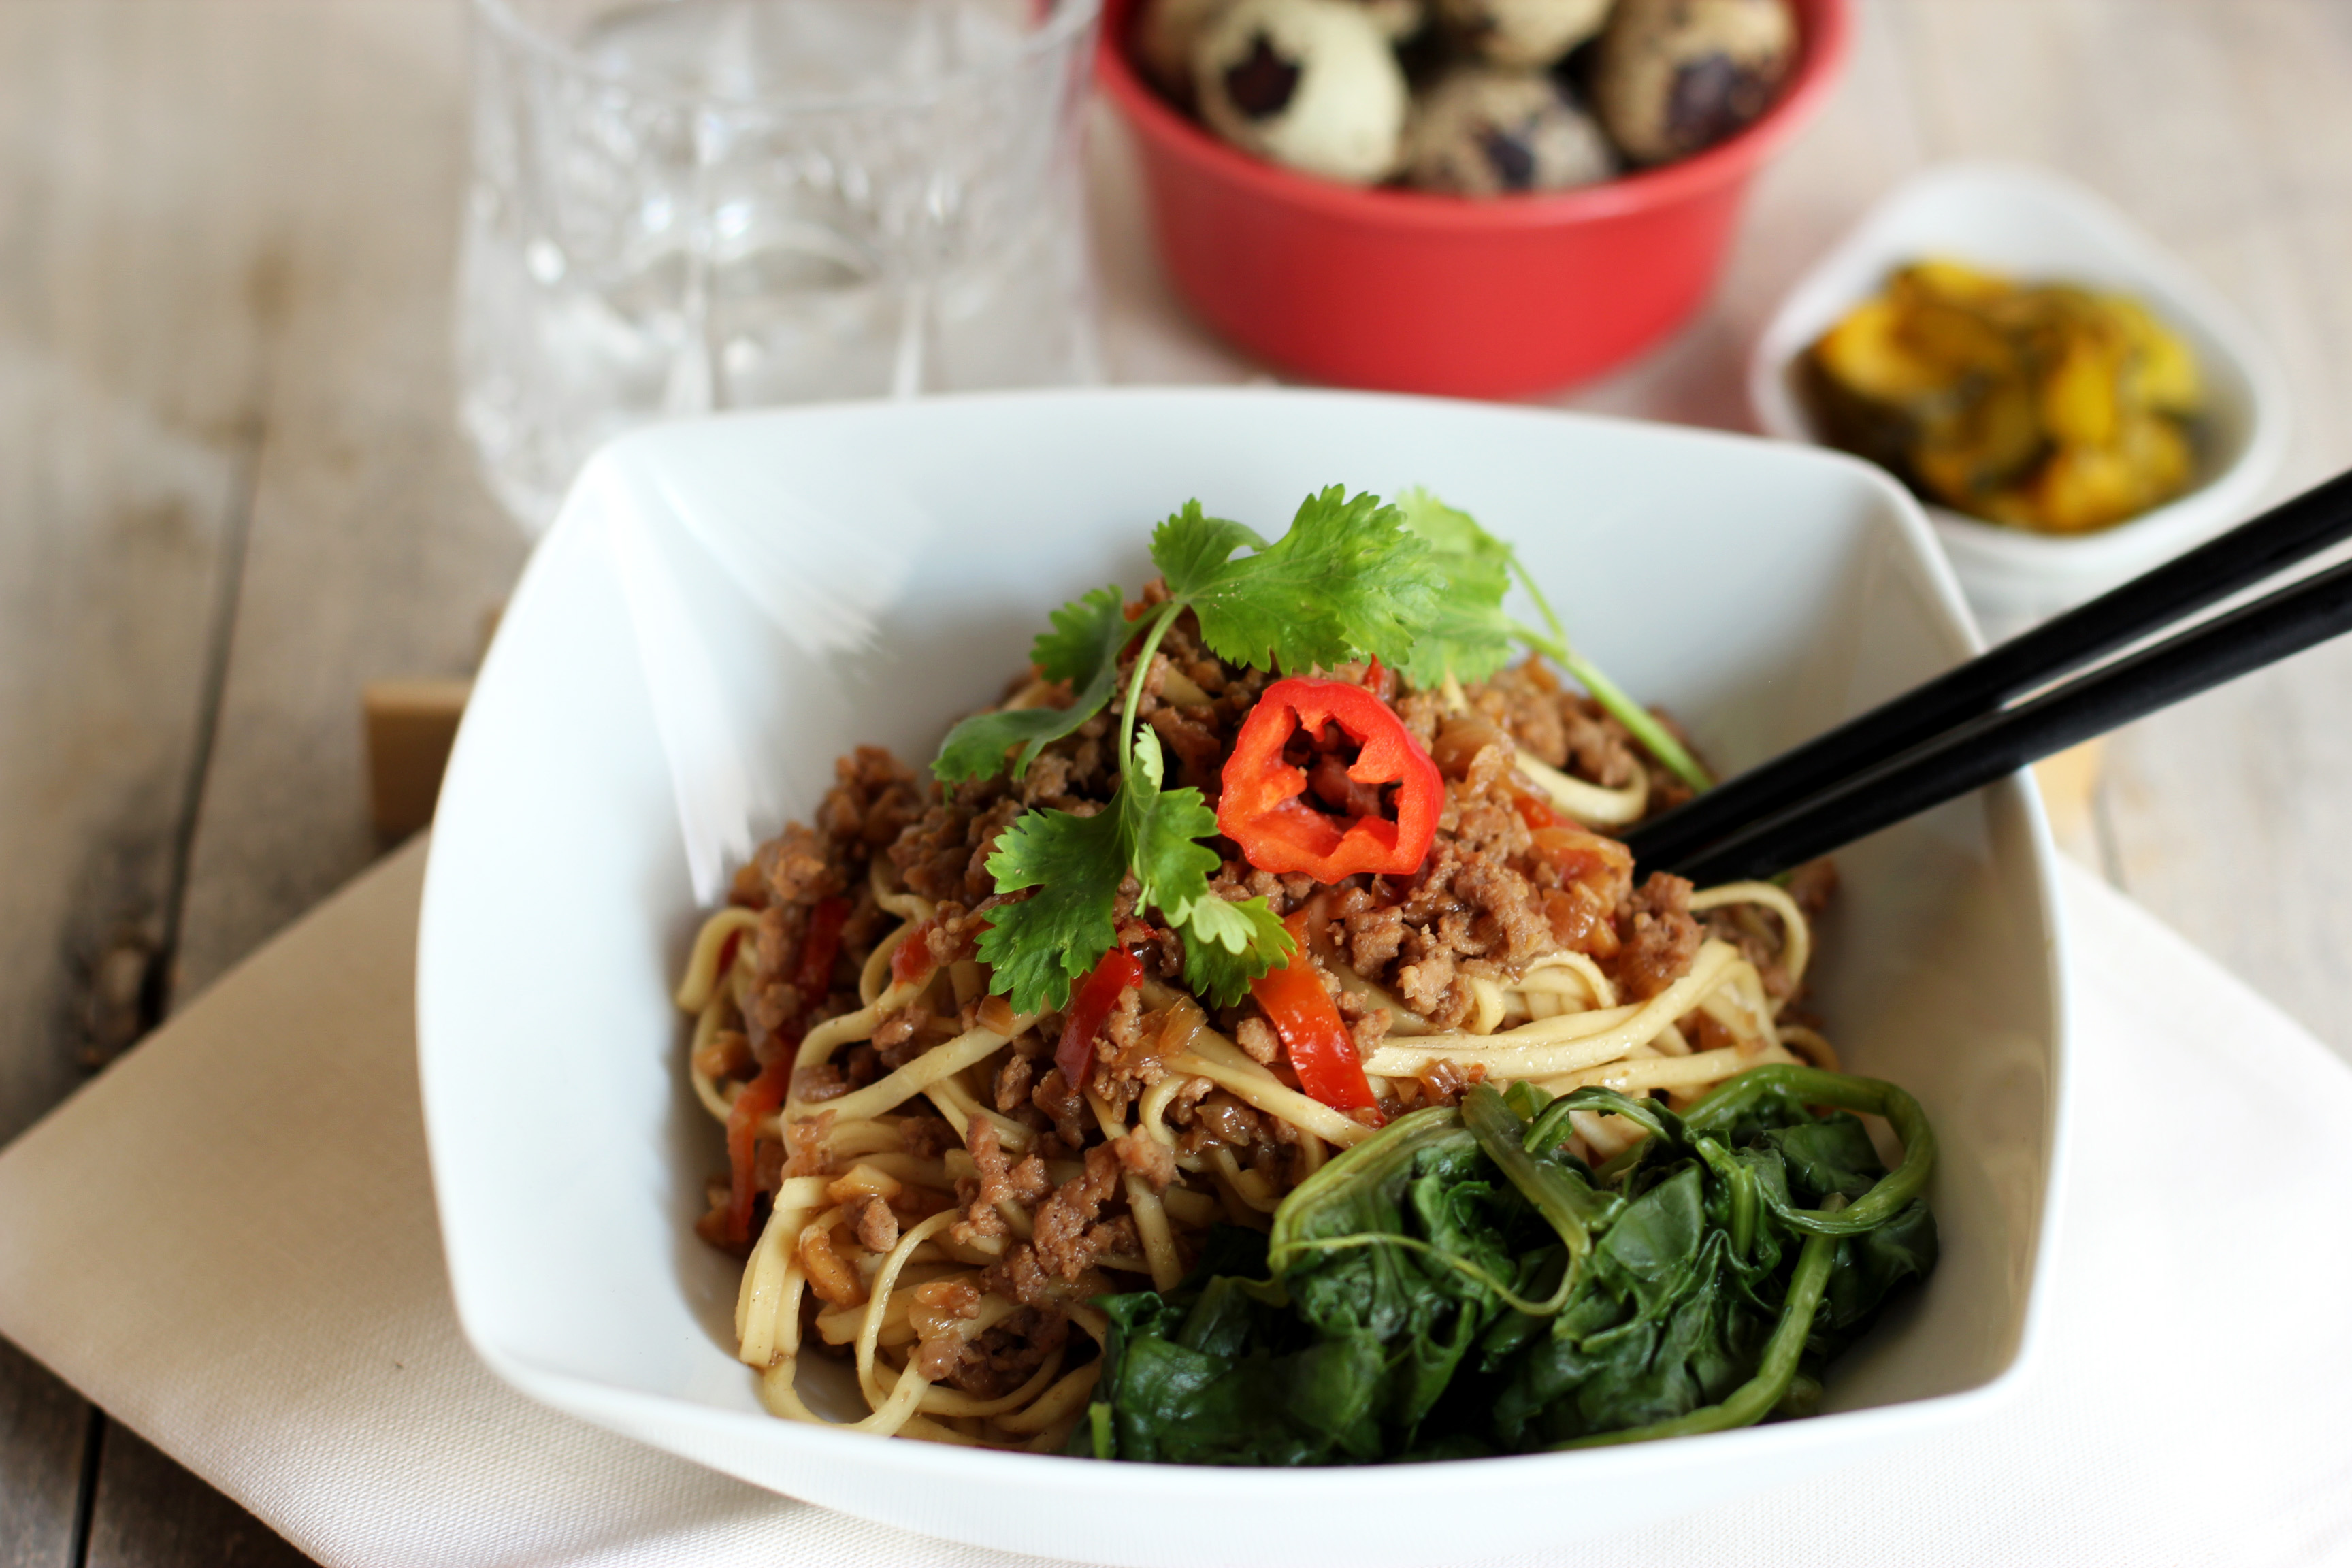 Spicy Ground Veal Noodles